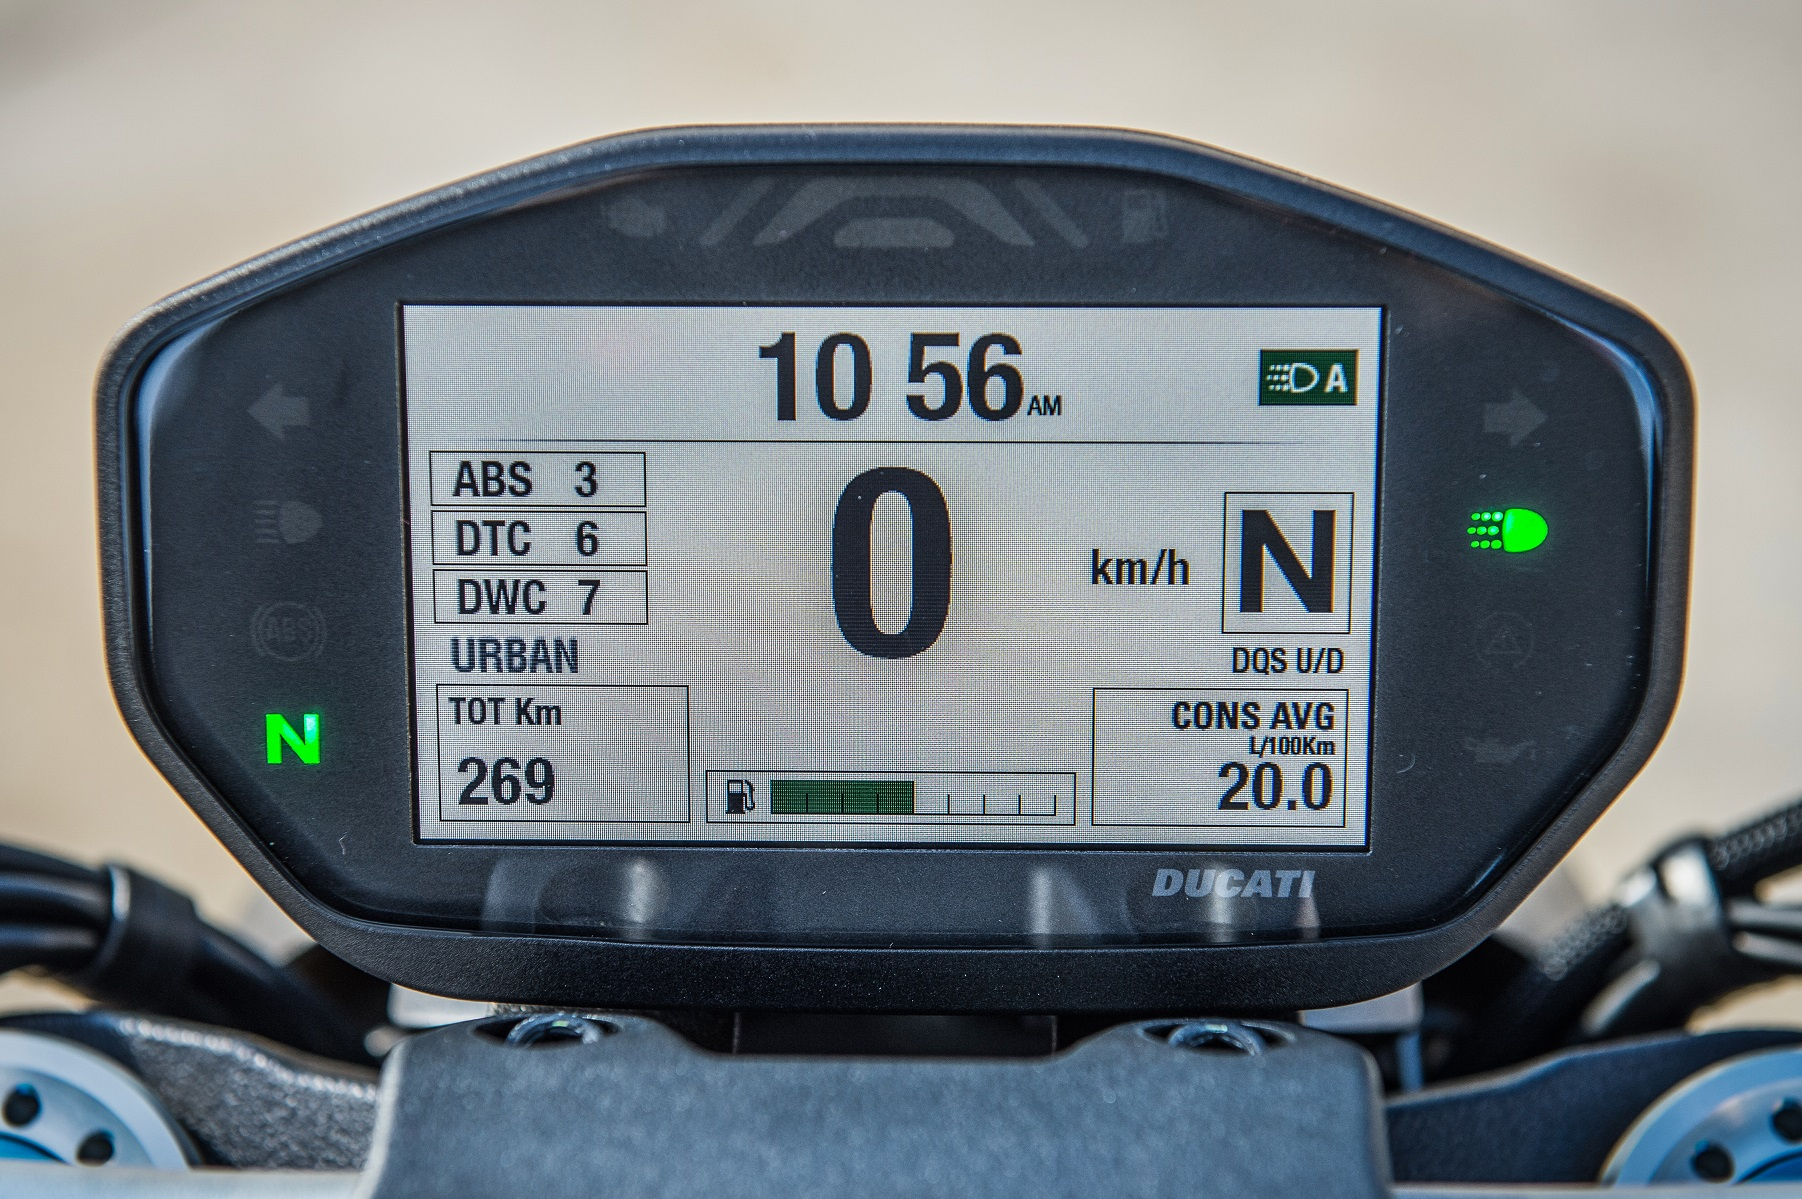 2017 Ducati Monster 1200 S instrument panel